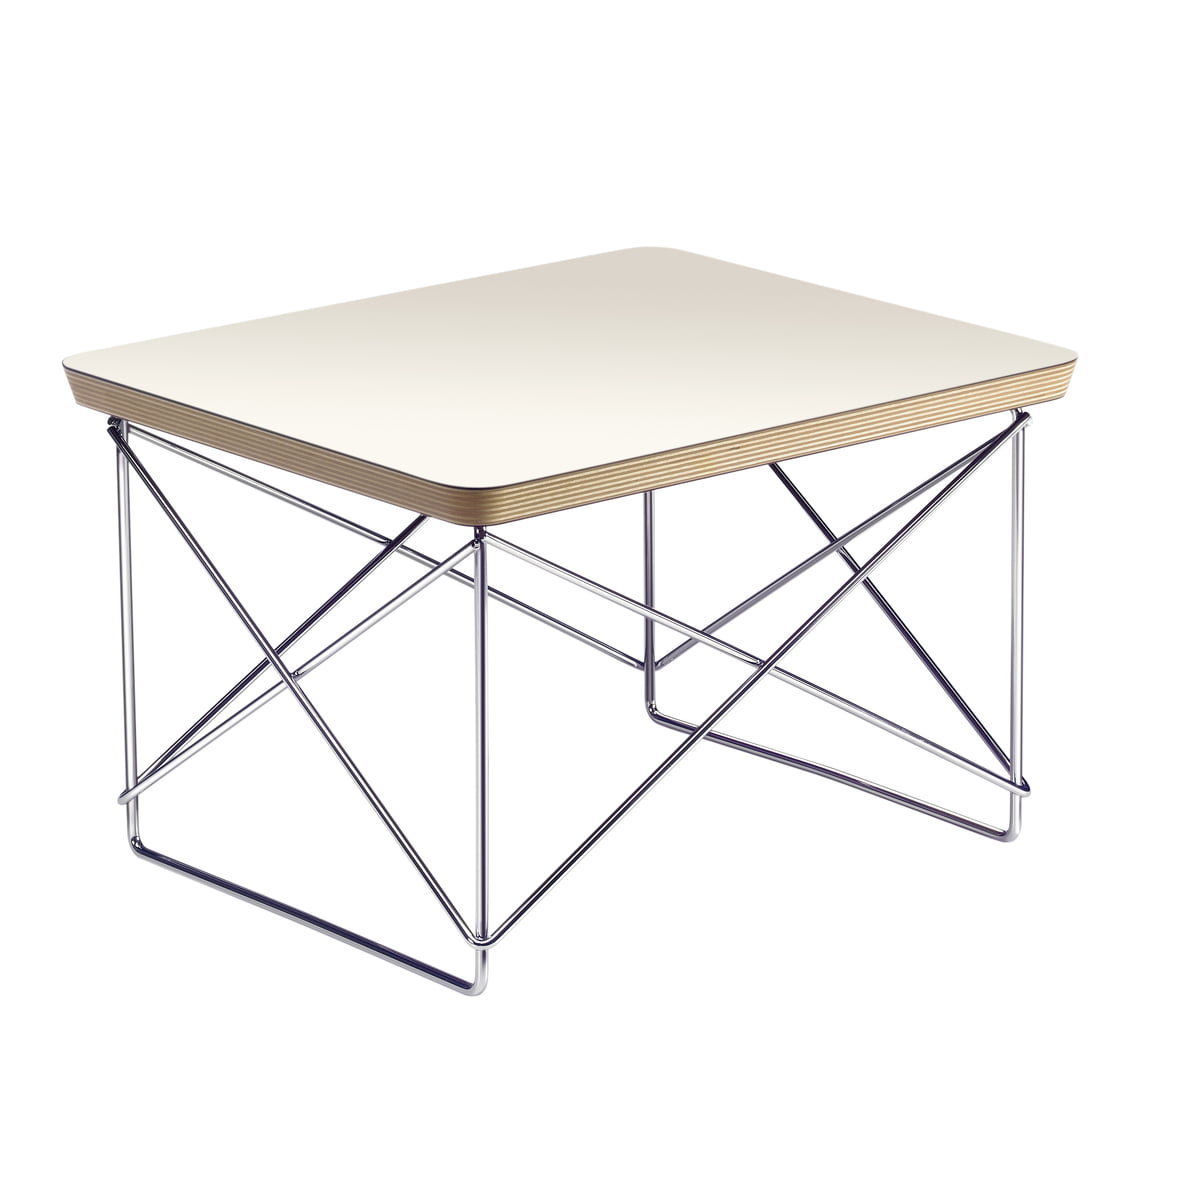 Delicieux Eames Occasional Table LTR By Vitra | Connox